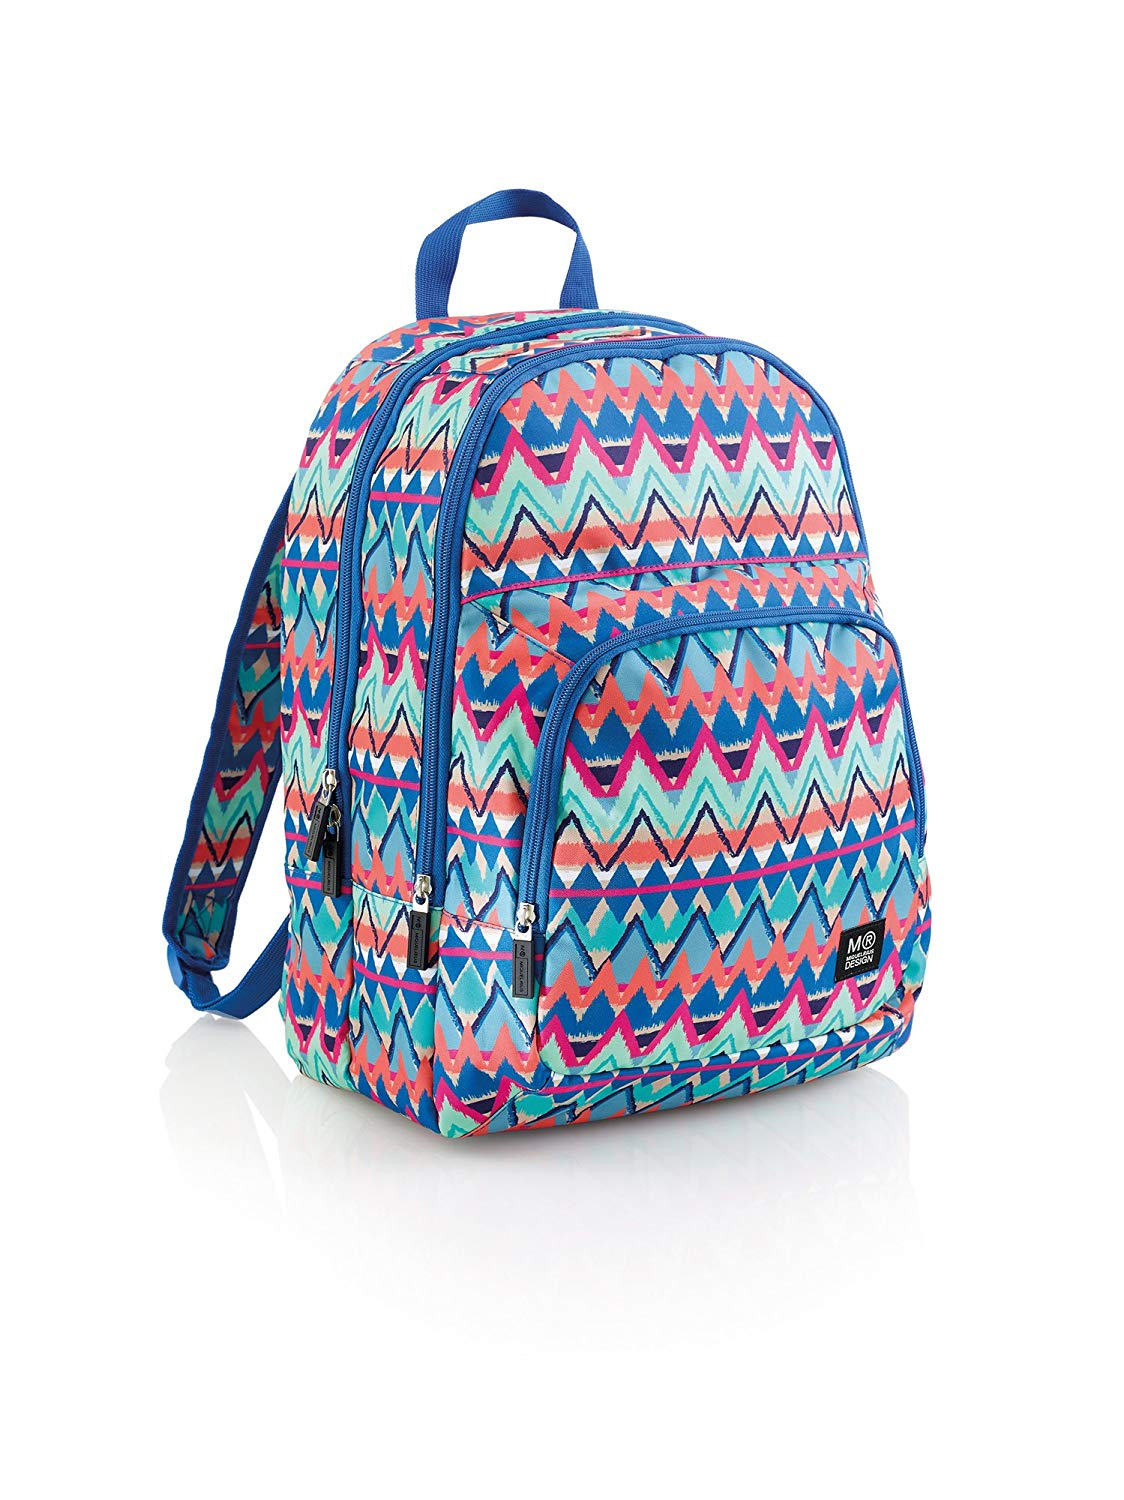 Miquelrius Mochila Children's Backpack, 42 cm, Multicolour (Multicolor)